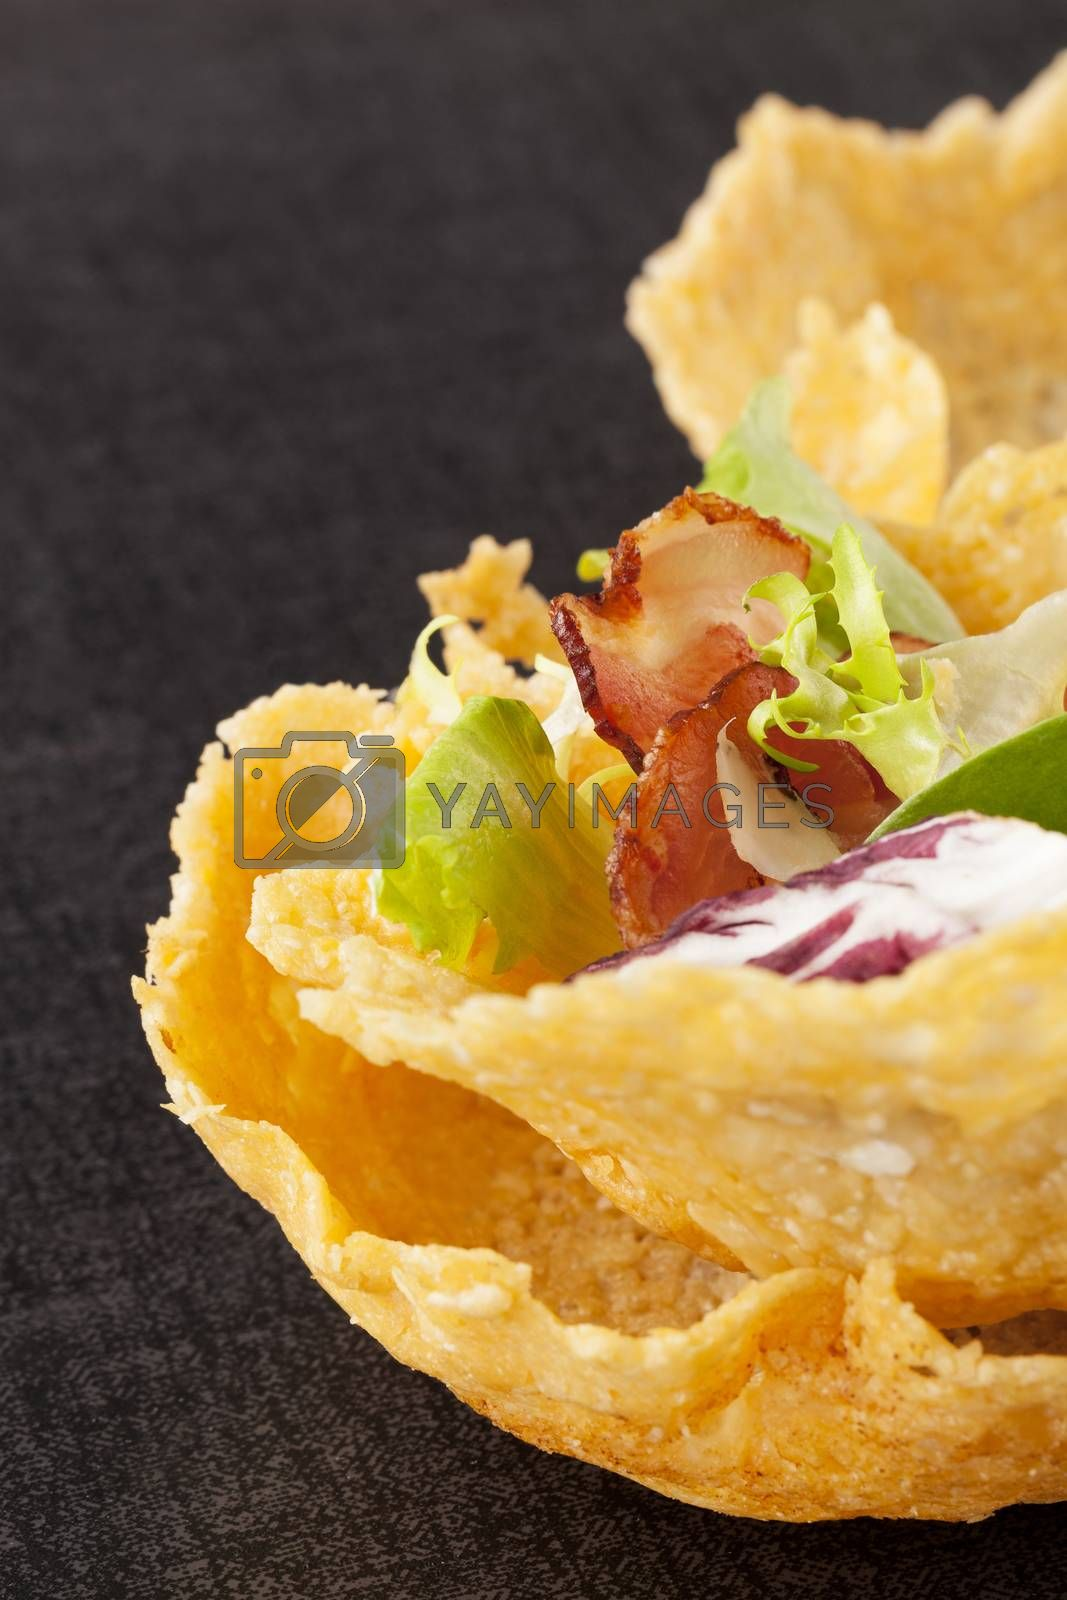 Cheese basket filled with fresh vegetable and bacon on black background. Culinary luxurious cheese eating.